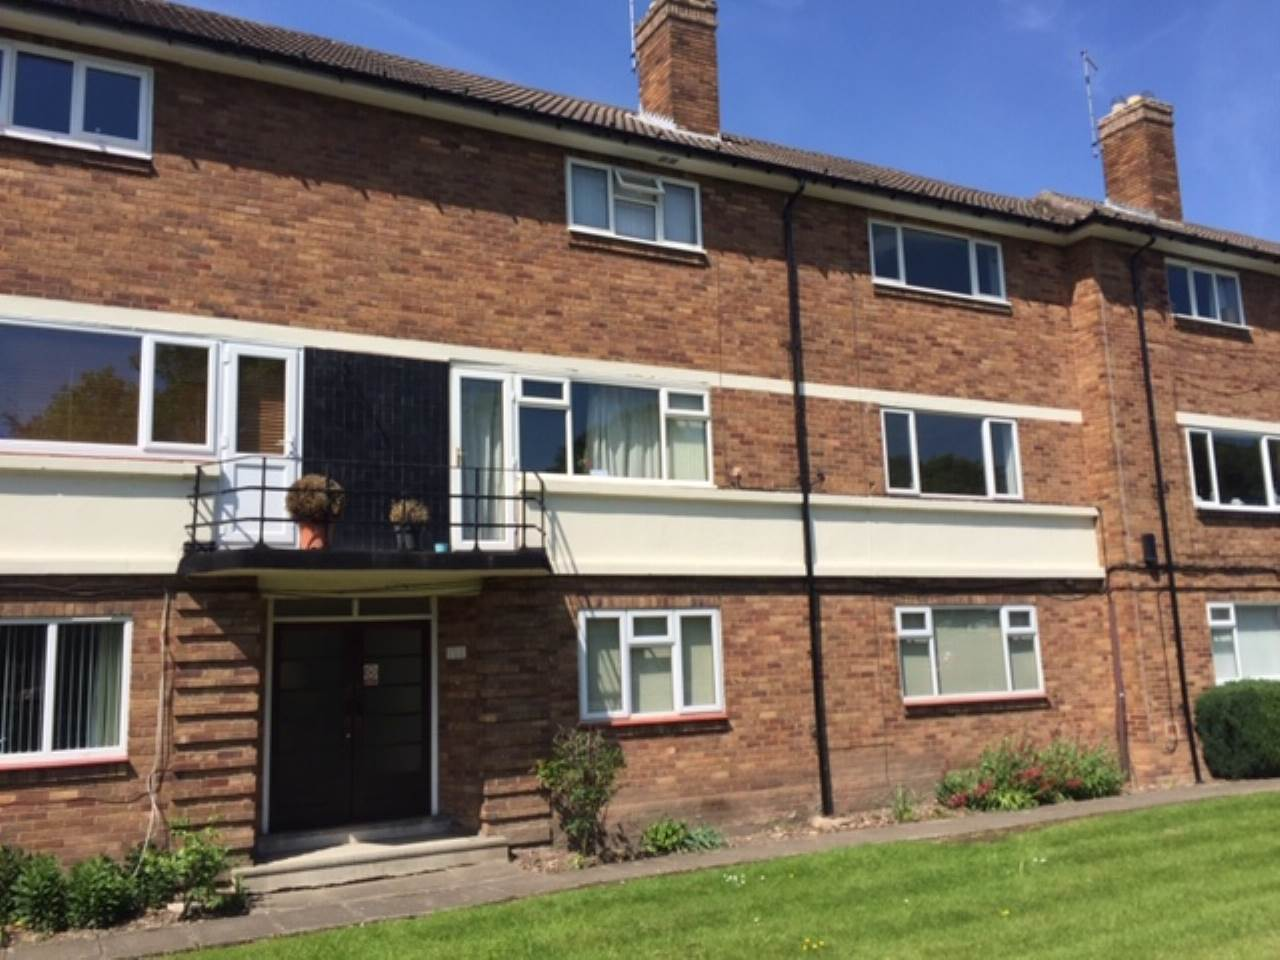 2 bed flat to rent in Walmley, Sutton Coldfield  - Property Image 1